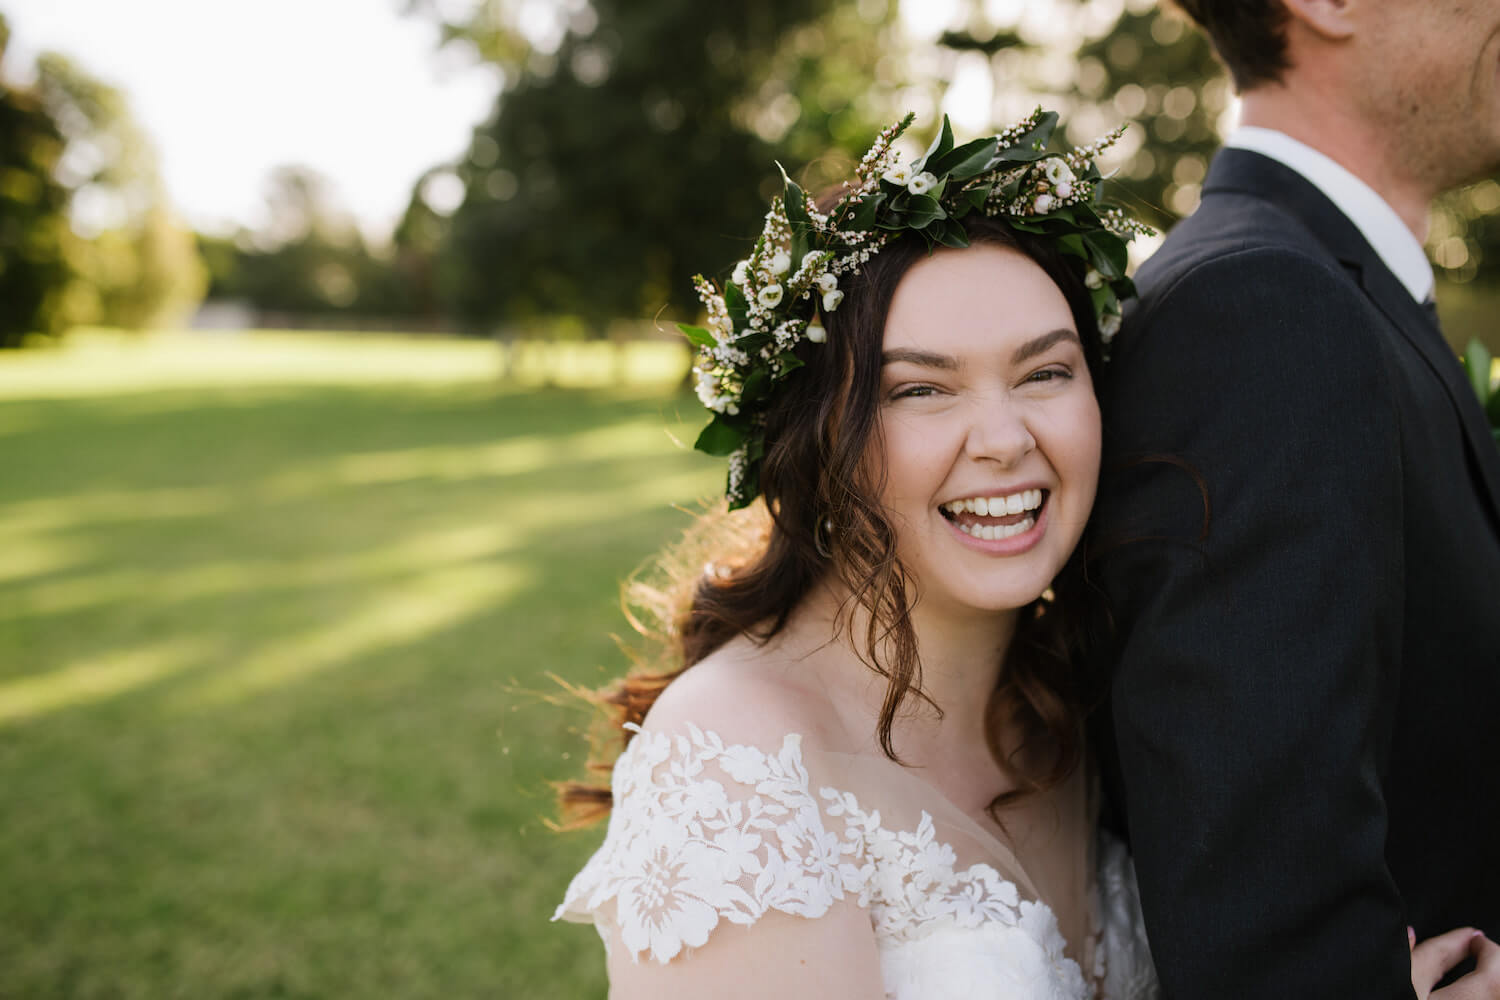 wedding planner queensland wedding planning services near me storybook and co lara furst the posy co